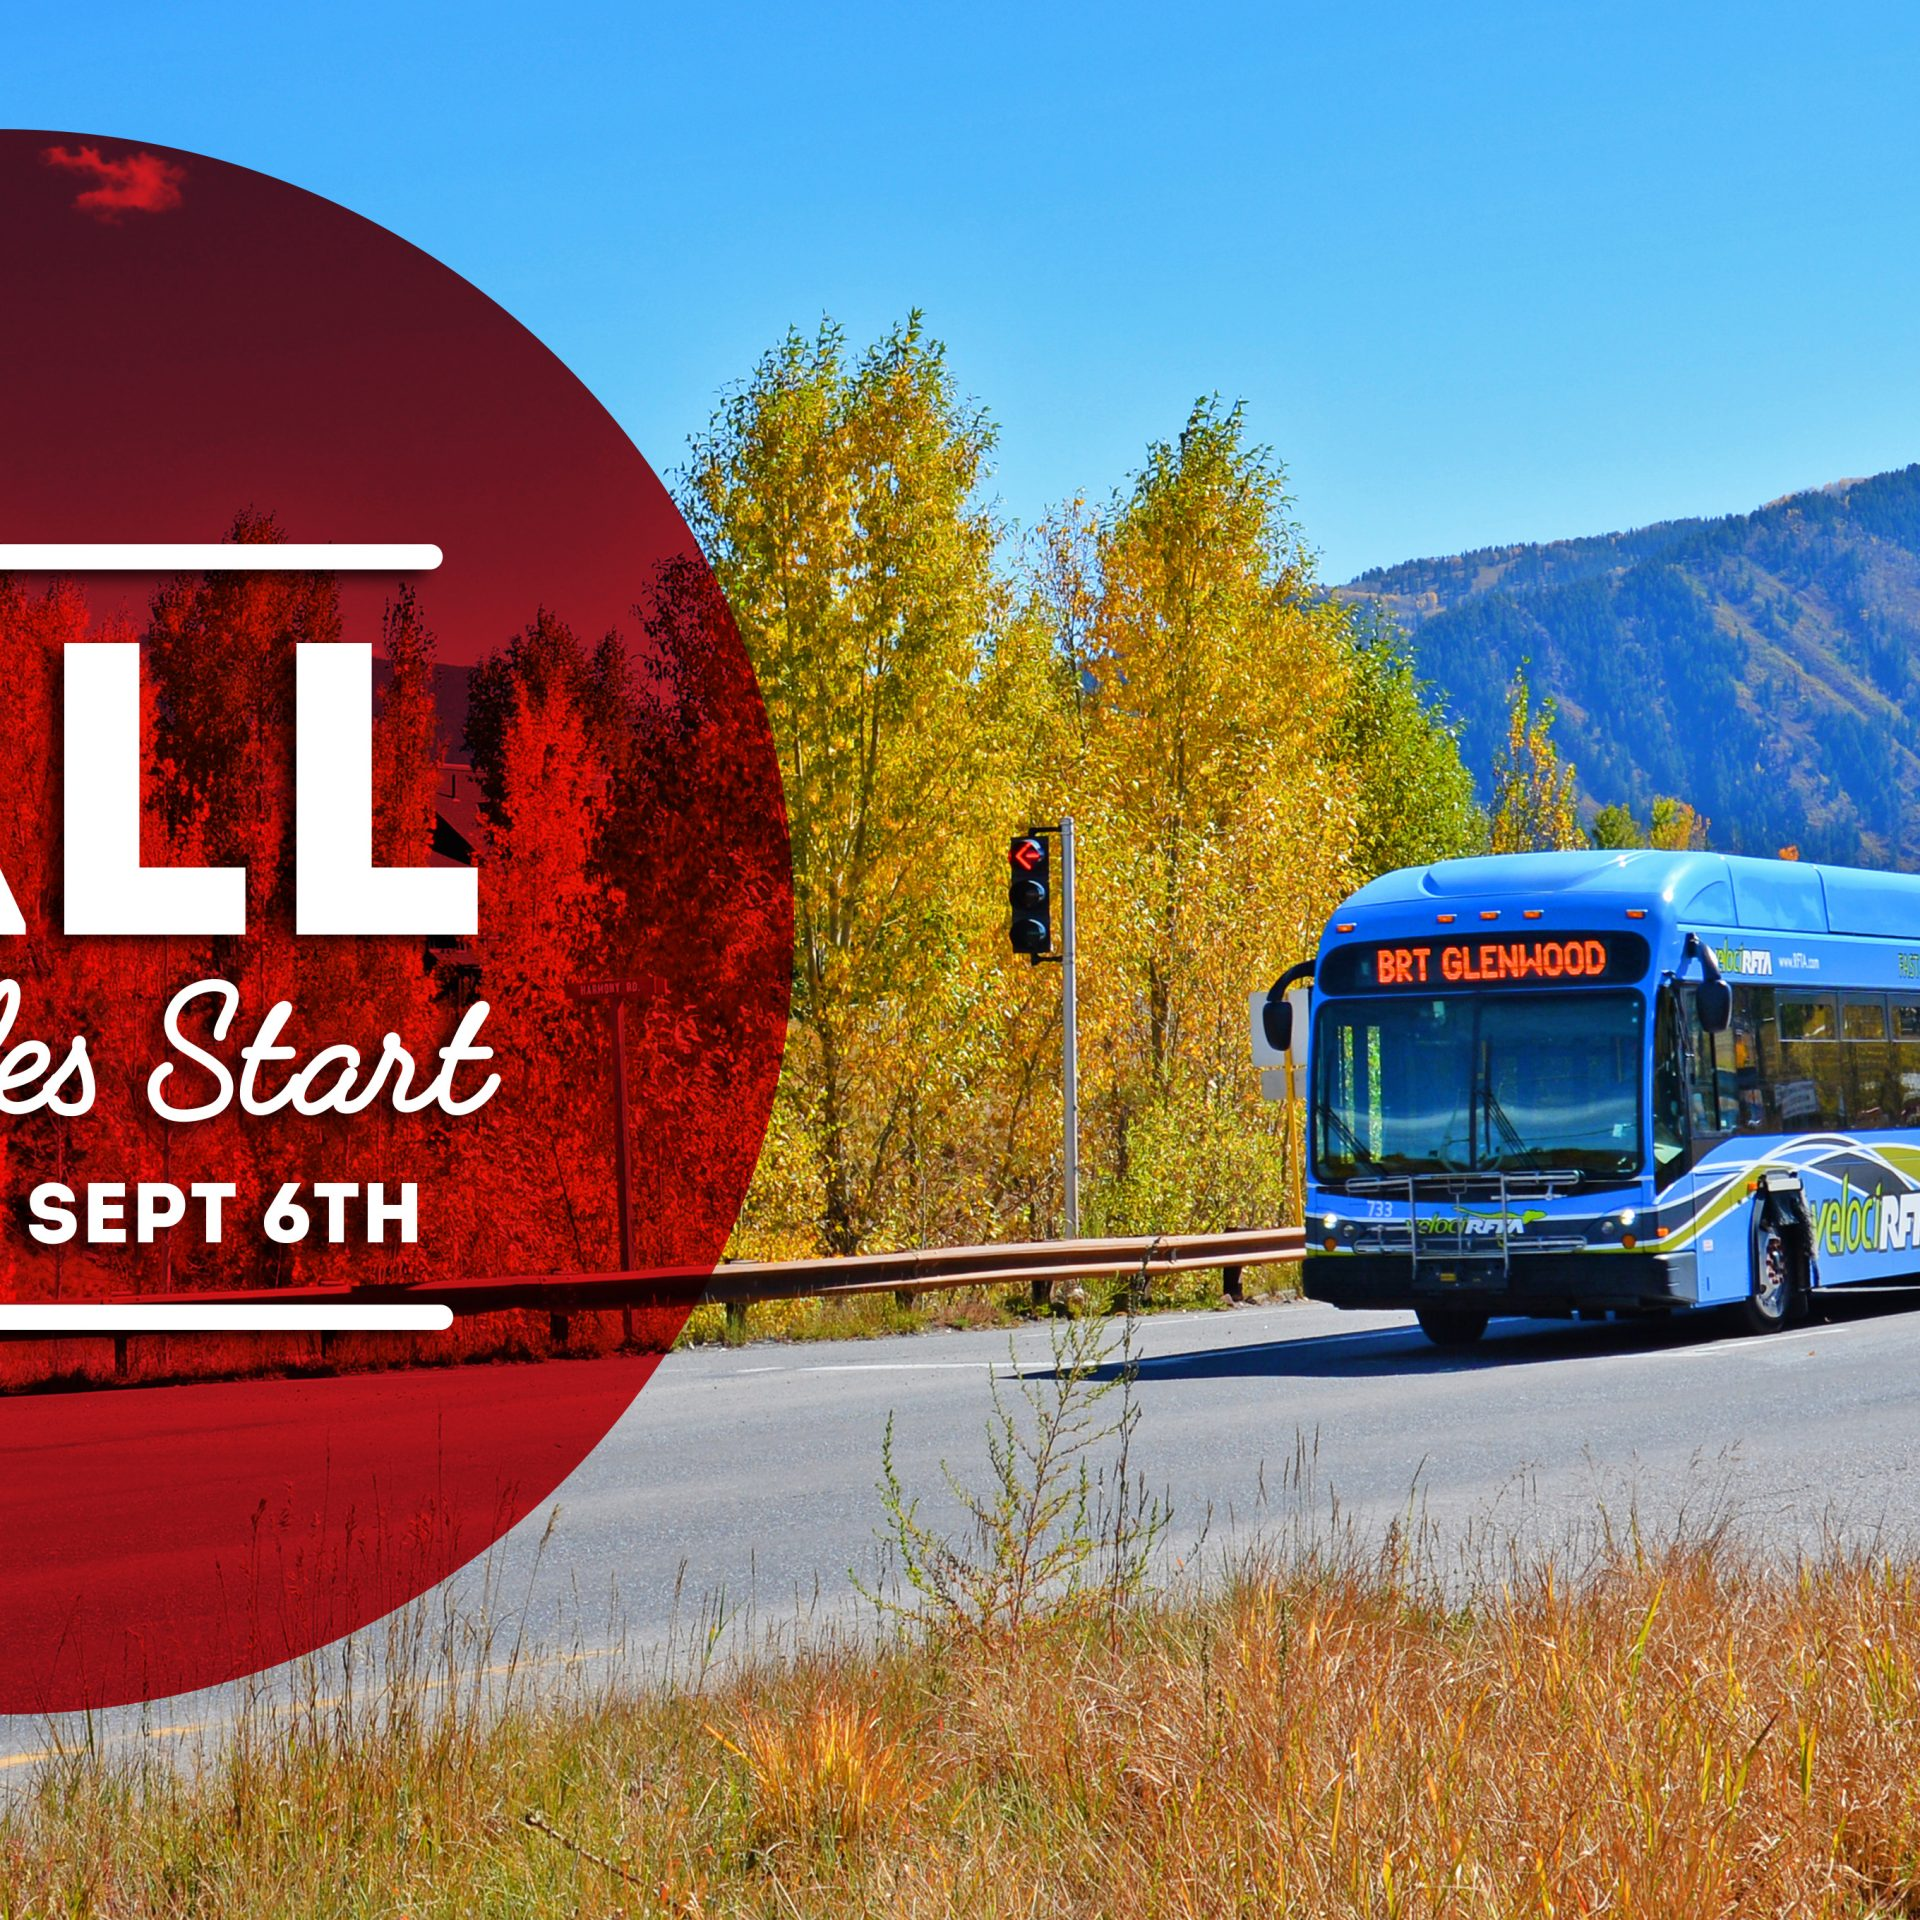 RFTA Fall Season Schedules Start Tuesday, Sept. 6th - Roaring Fork ...